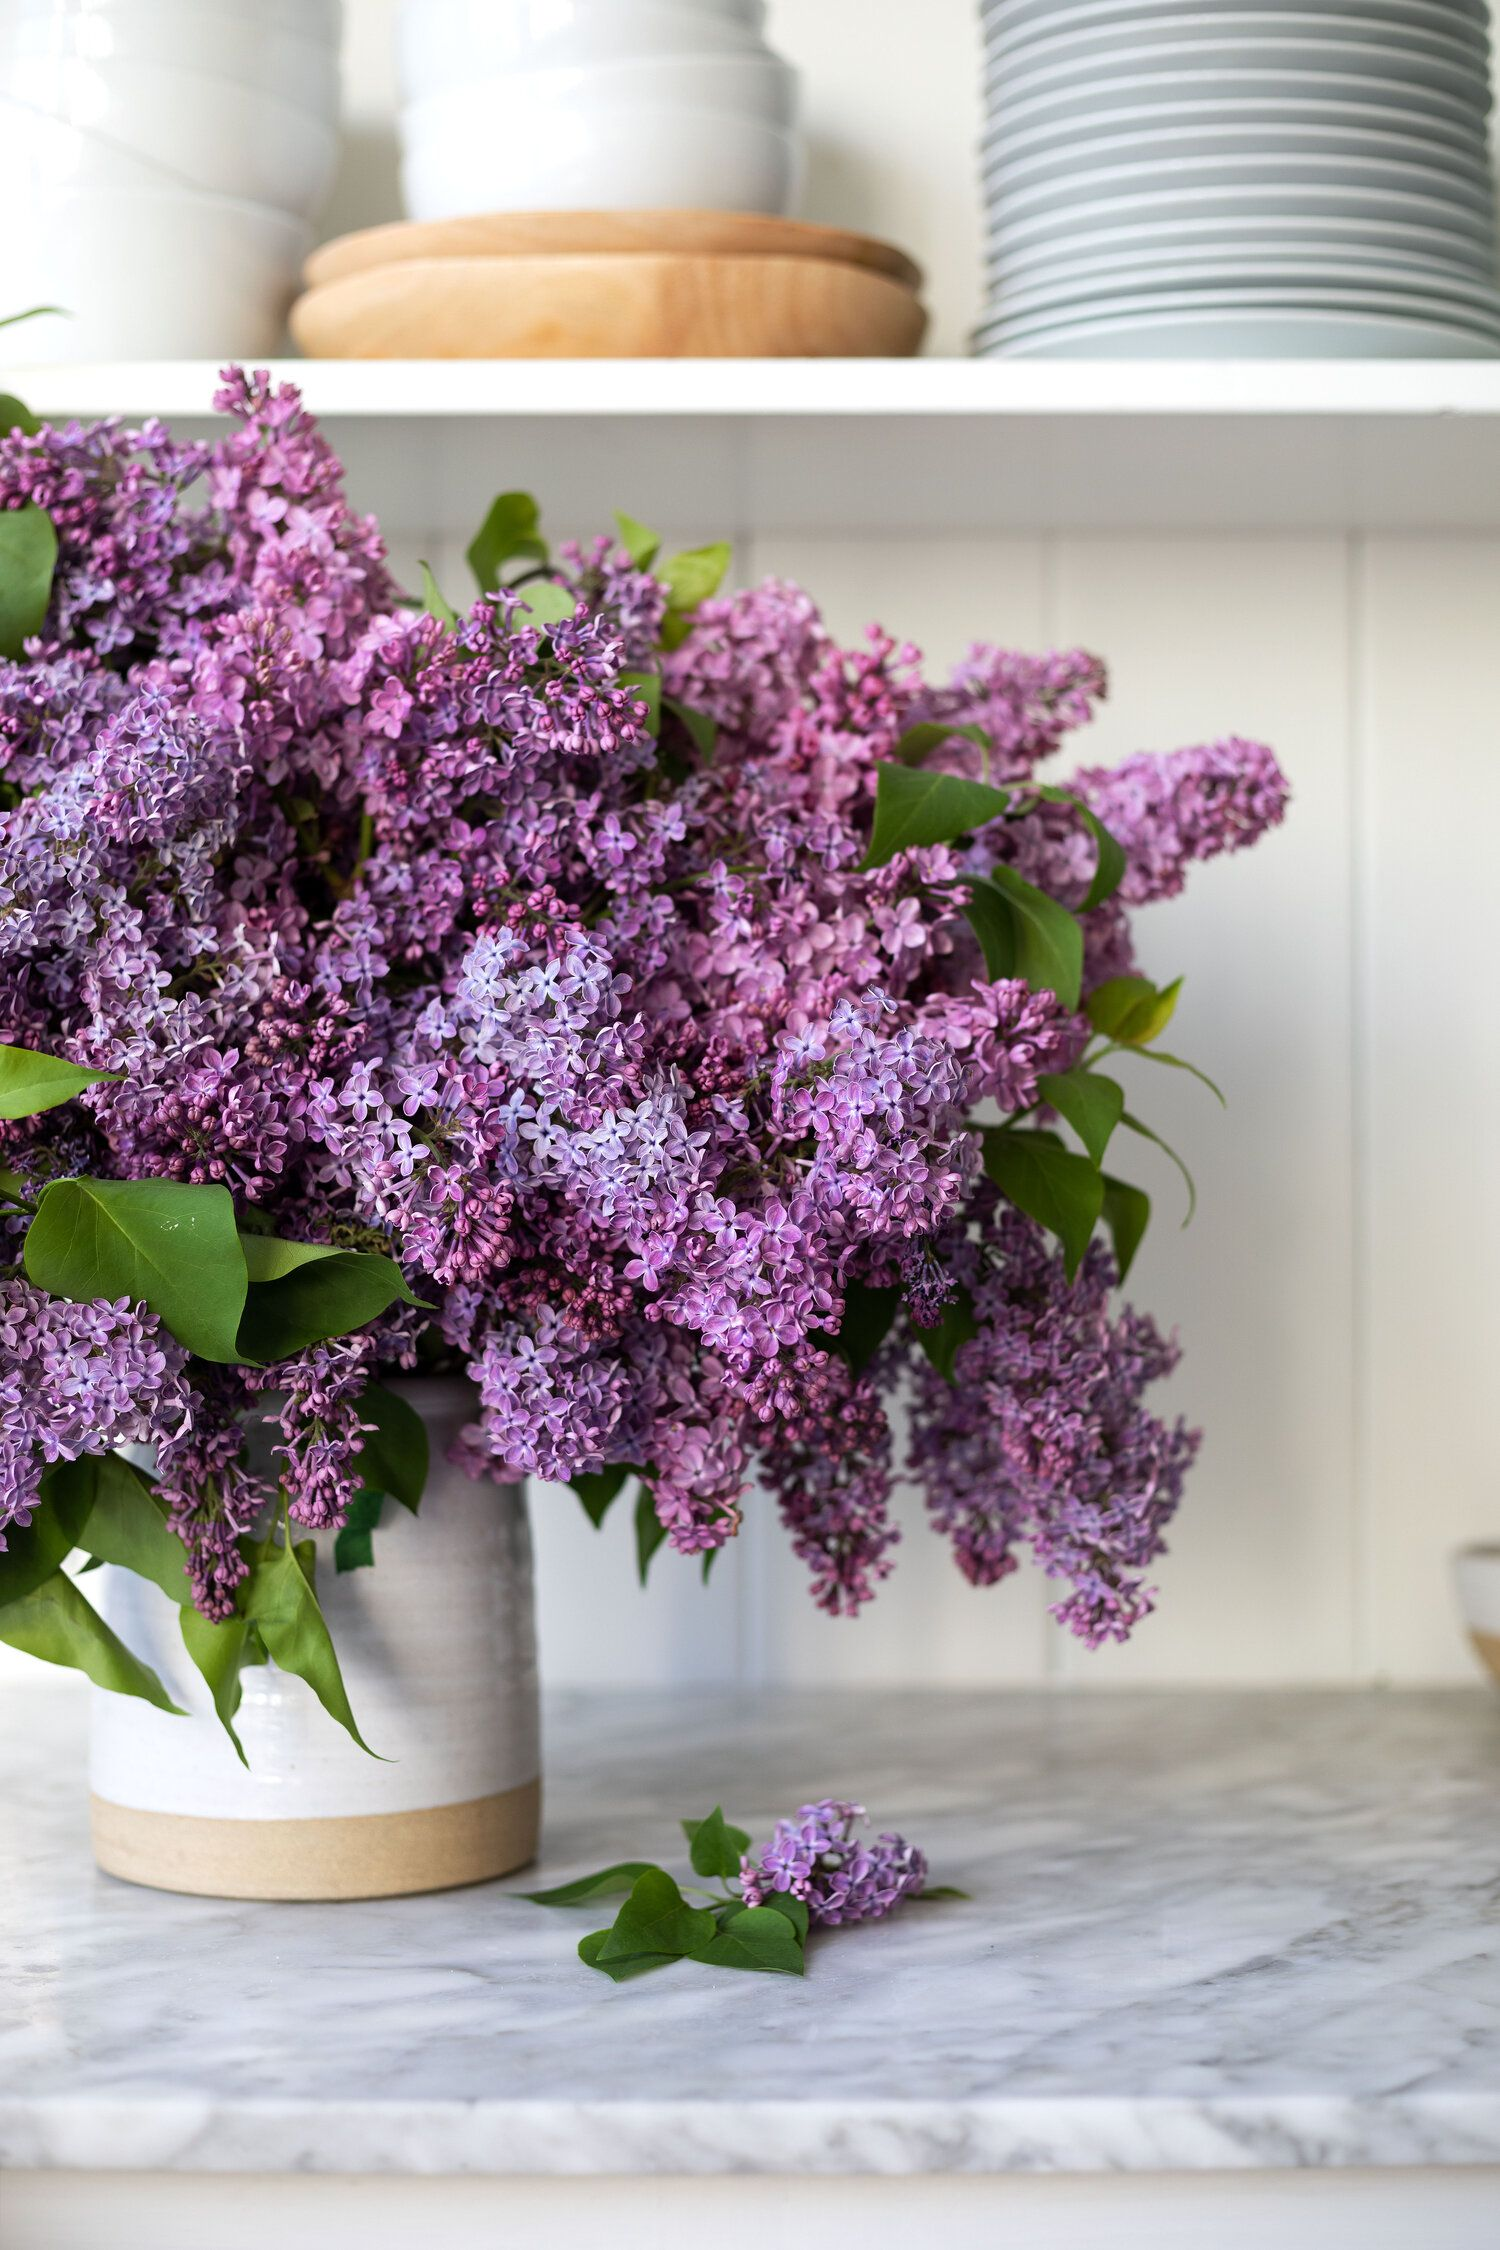 How To Arrange An Overflowing Bouquet Of Lilacs Keep Them From Wilting The Grit And Polish In 2020 Lilac Bouquet Lilac Flower Arrangements